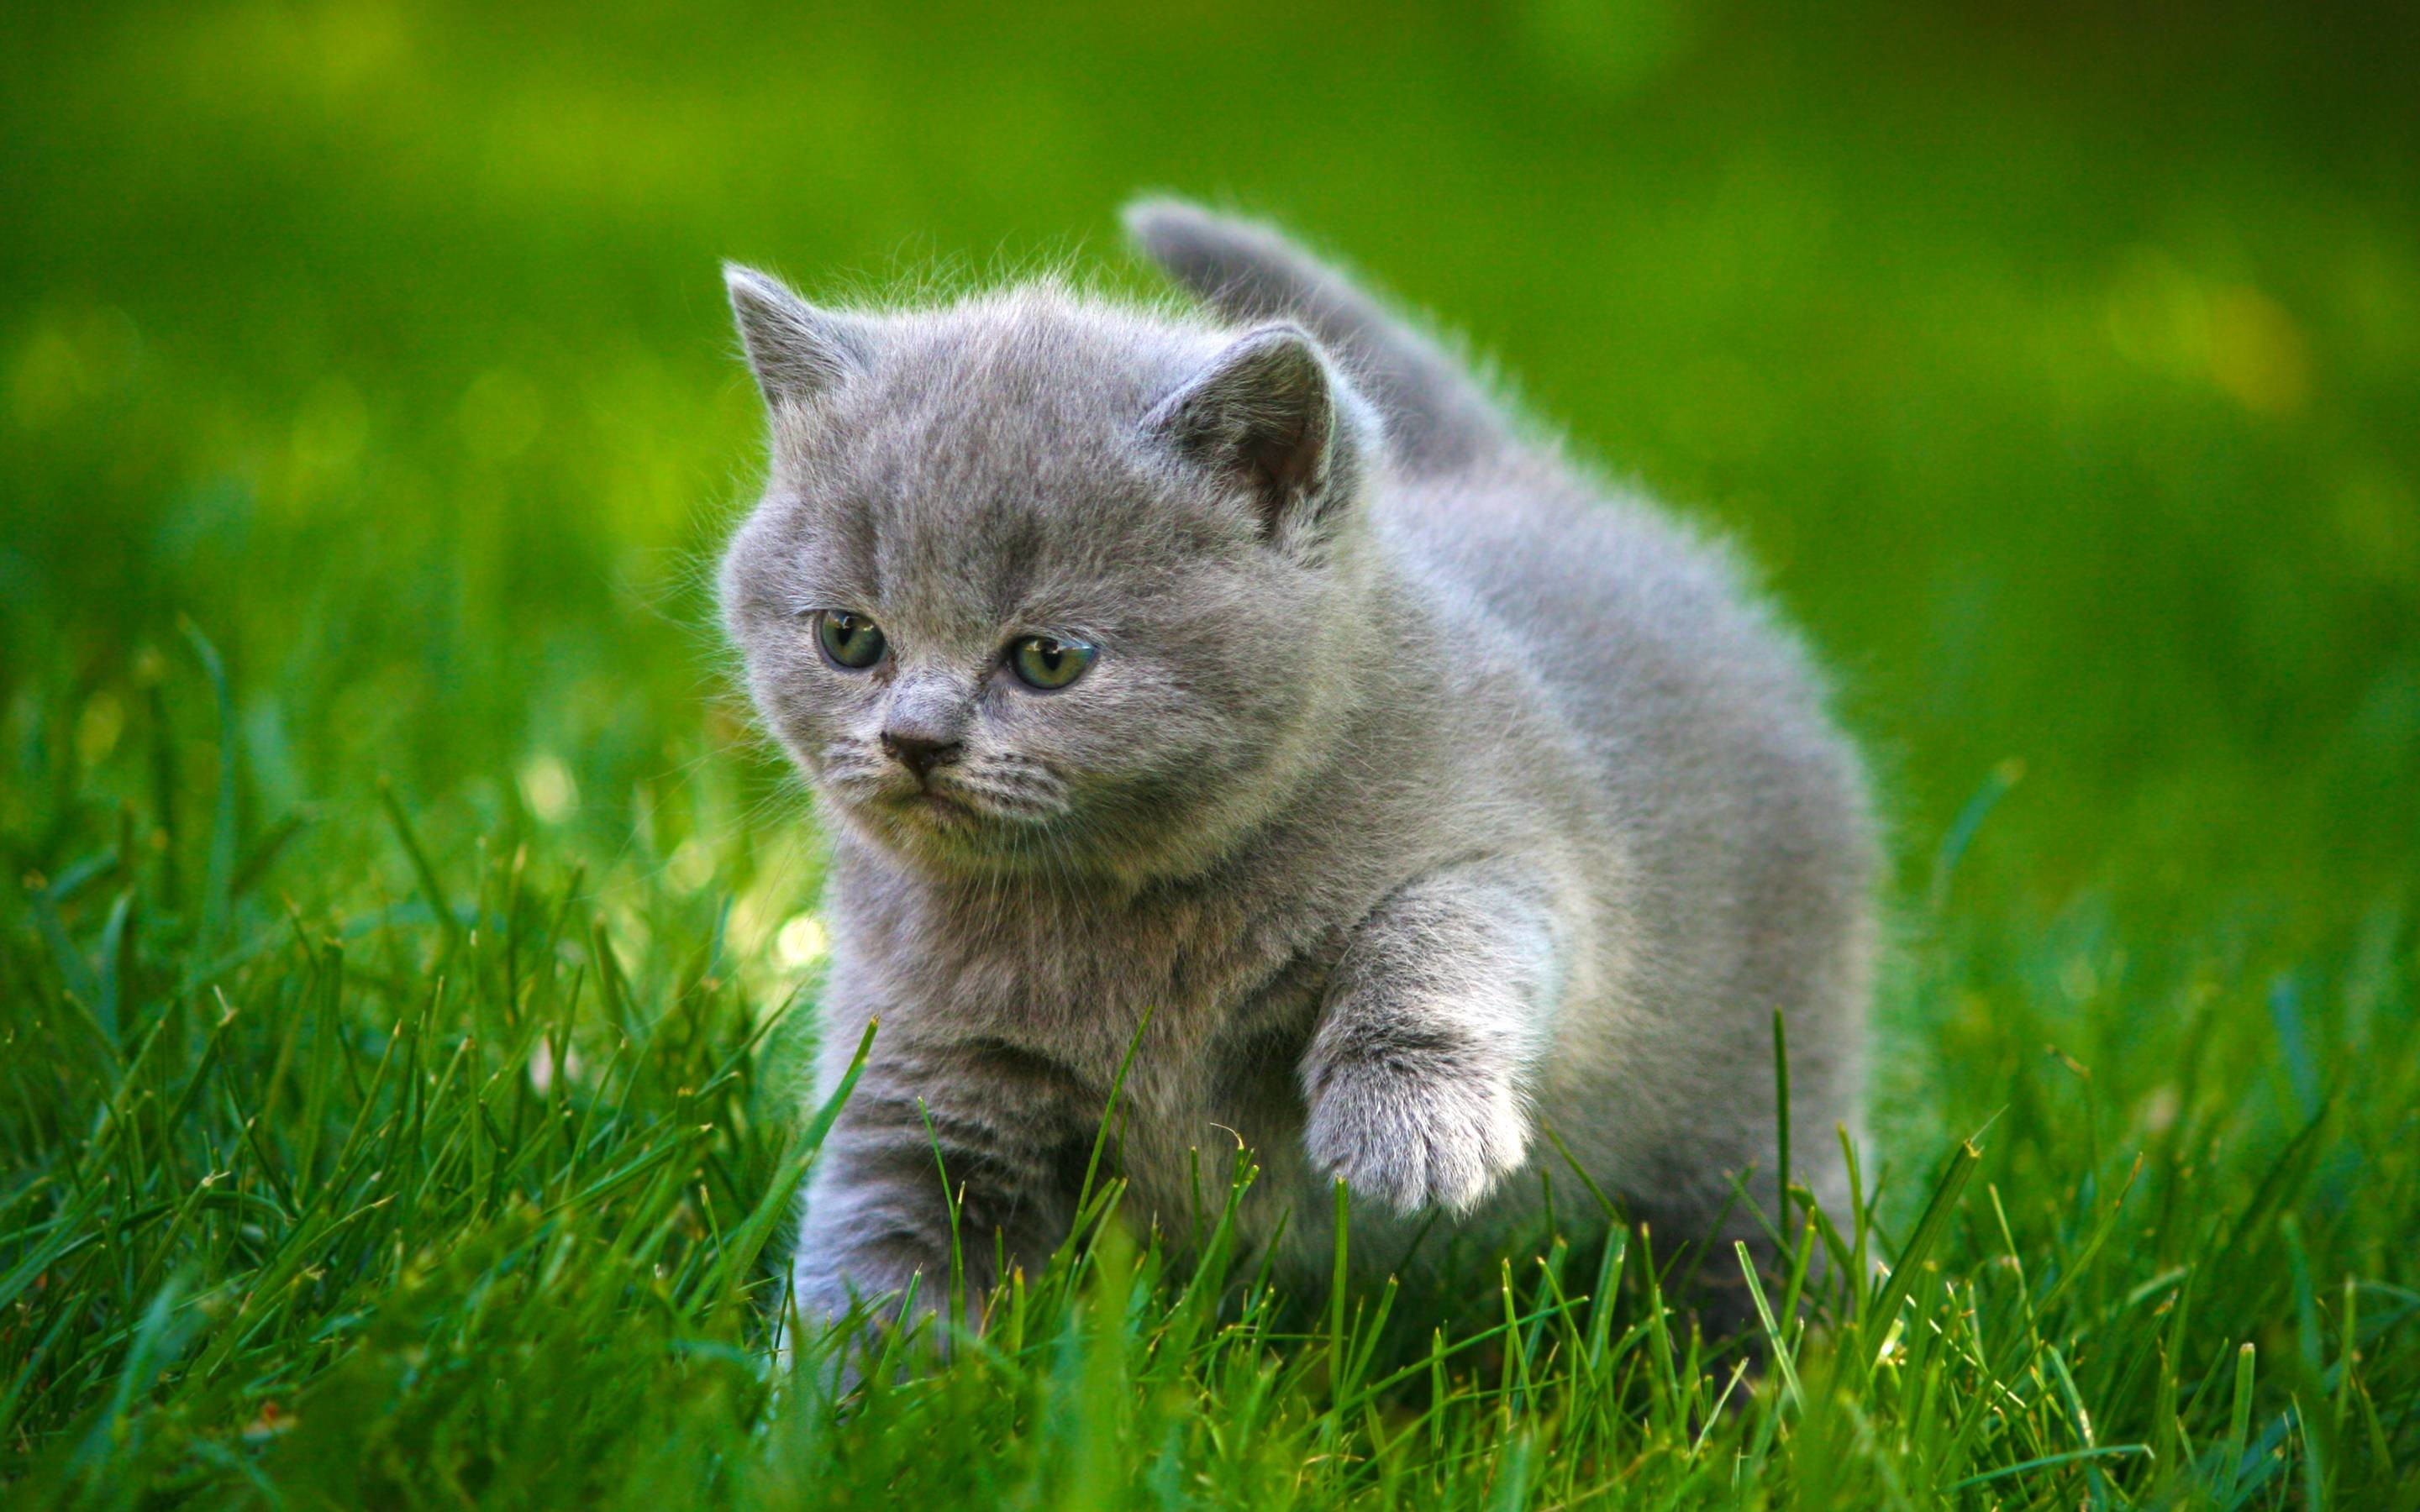 Res: 2880x1800, Full Hd For Cat Wallpaper Cool 3d Cute Fluffy Iphone